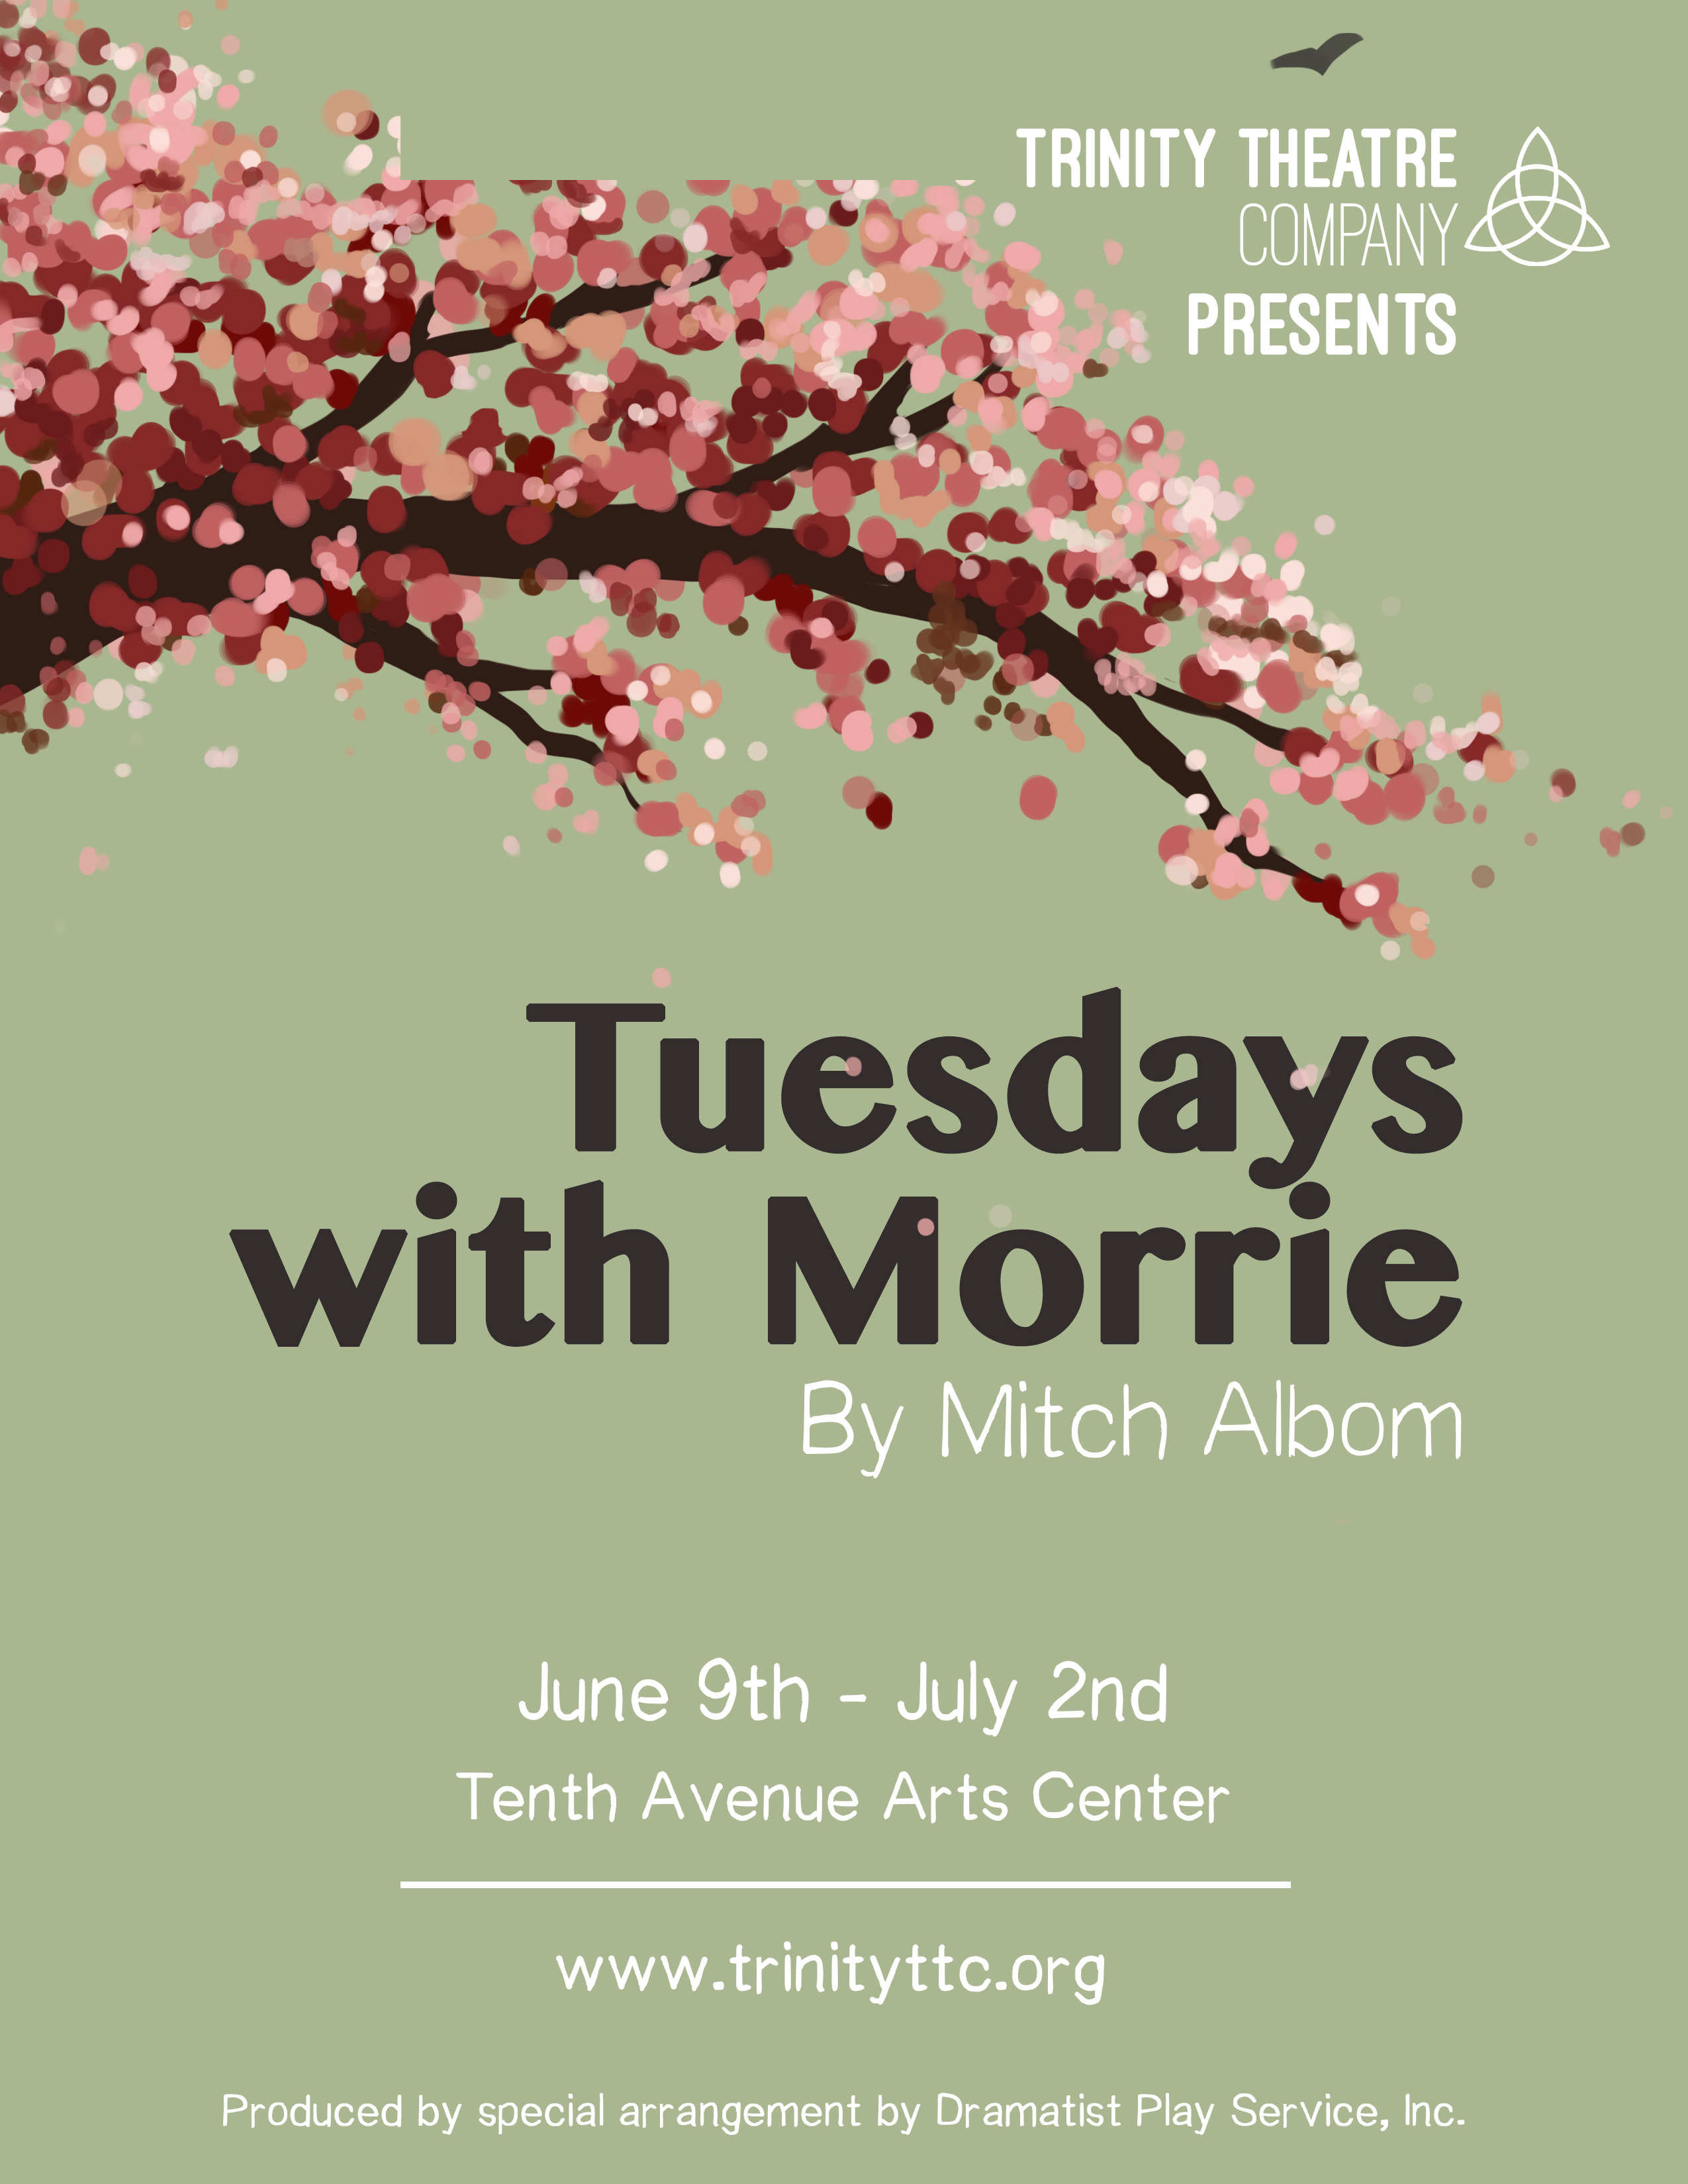 an analysis of the novel tuesdays with morrie written by mitch albom Tuesdays with morrie is a memoir (a narrative based on the author's life) written by mitch albom in which the author recounts his experiences meeting with his old college professor, morris.